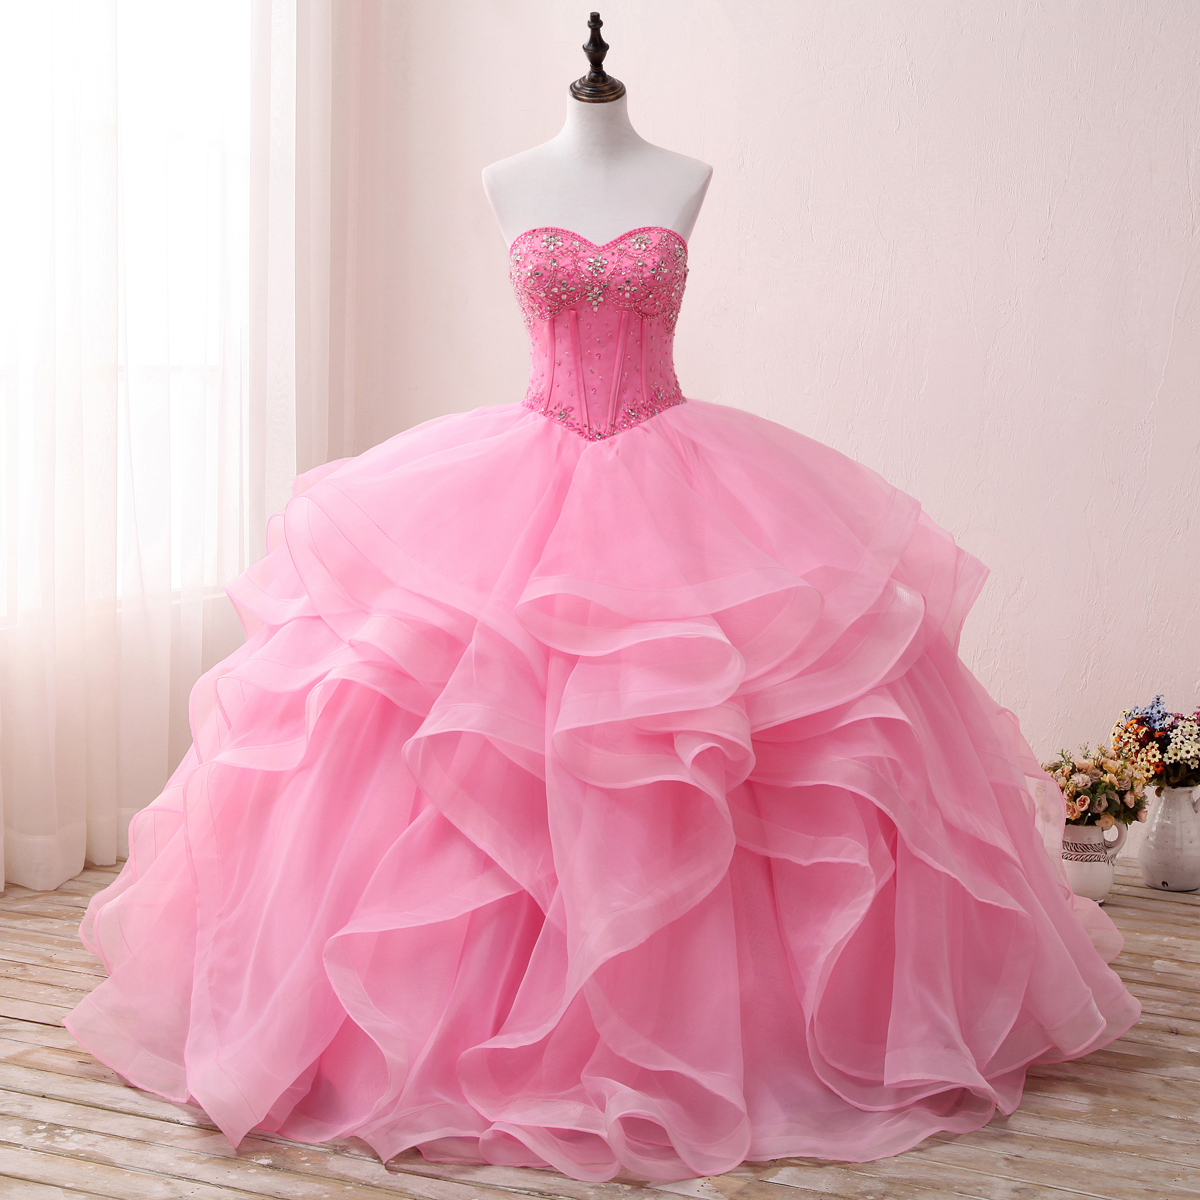 2018 Pink Princess Quinceanera Ball Gown Dresses Sleeveless Beaded ...